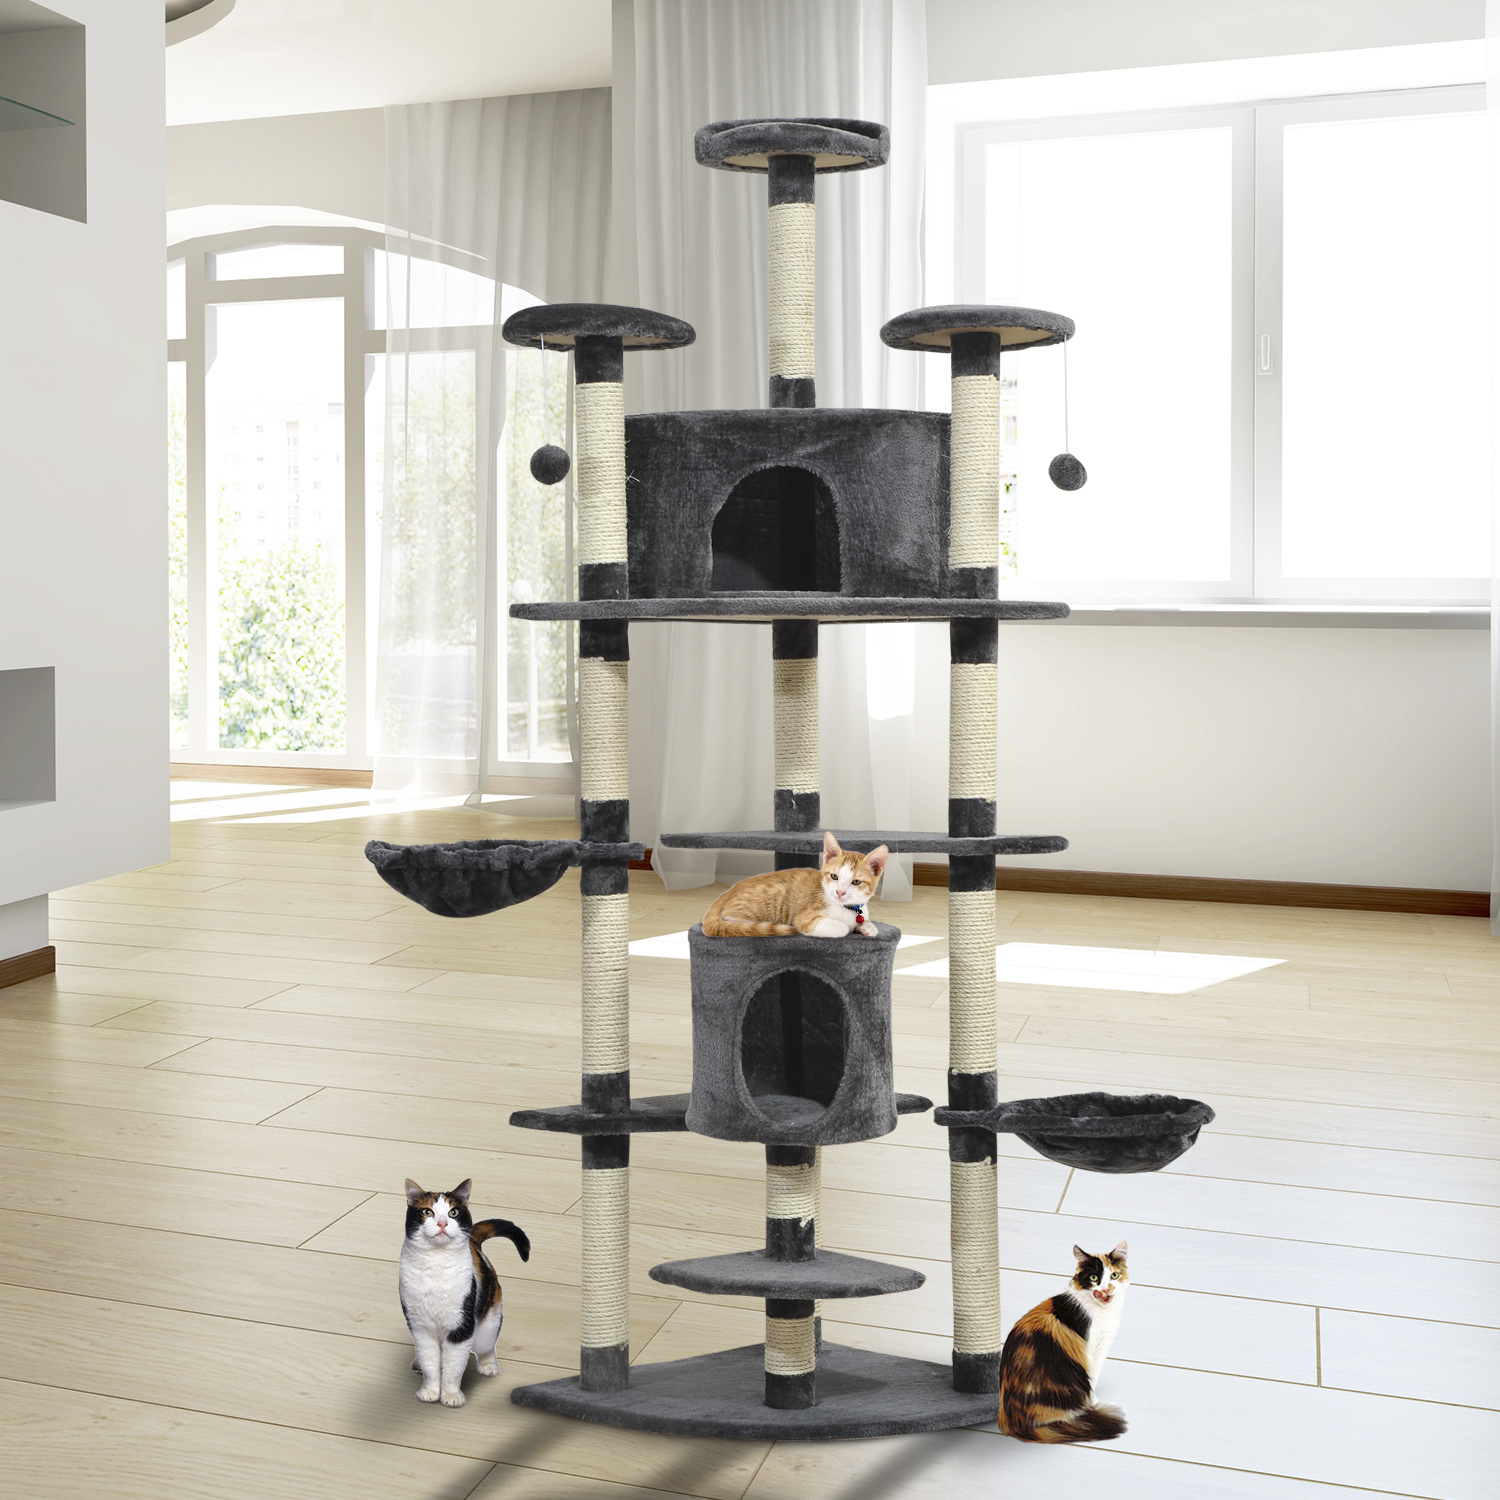 Image of €69,90 PawHut Arbre à Chat Griffoir Deux Niches 60X60X200 cm Gris et Beige / grattoir jouets animaux peluché D30-023 3662970008188